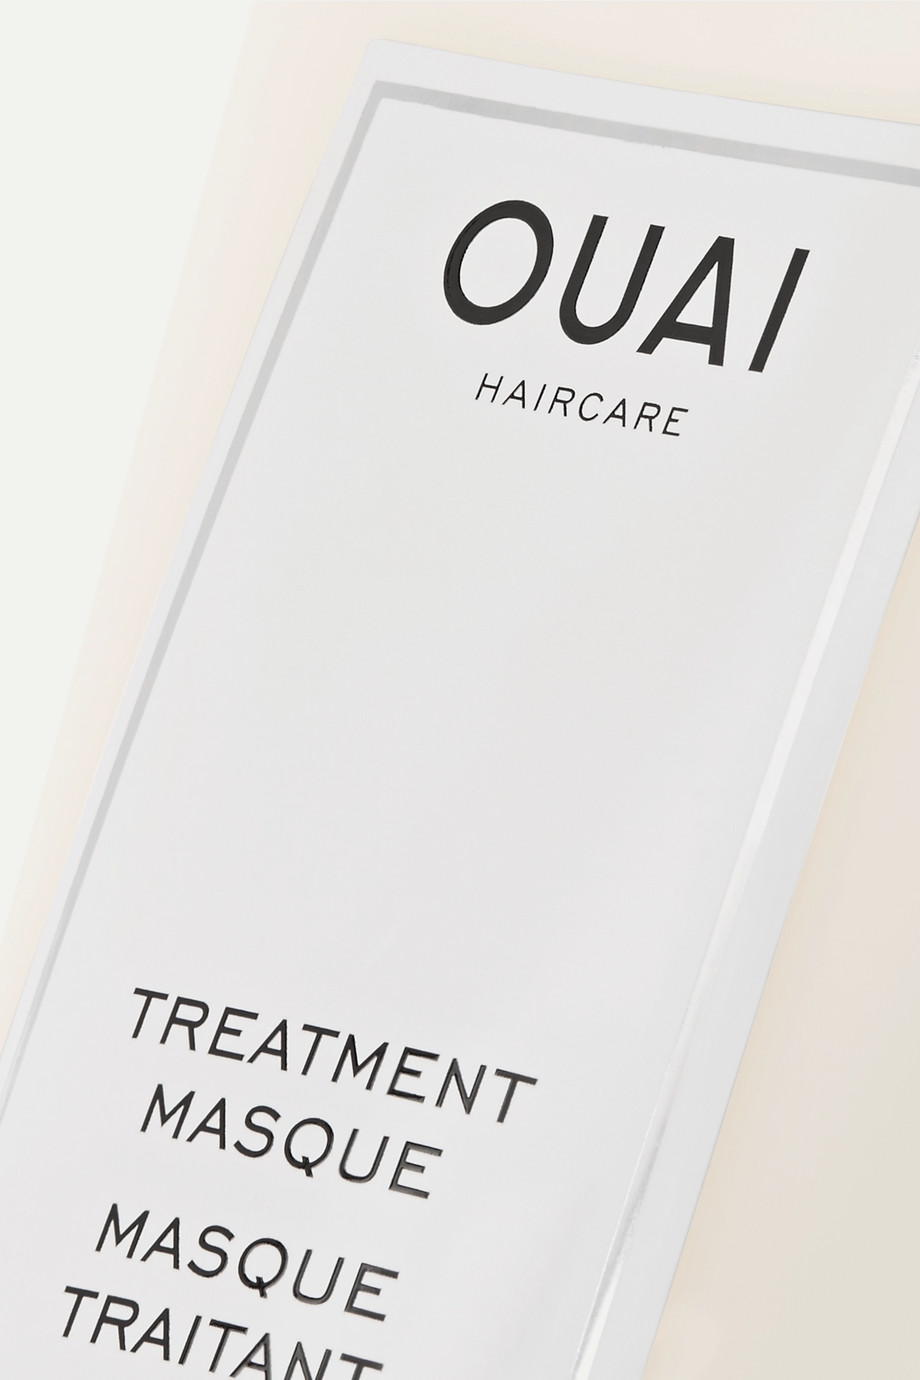 OUAI HAIRCARE Treatment Masque, 100ml